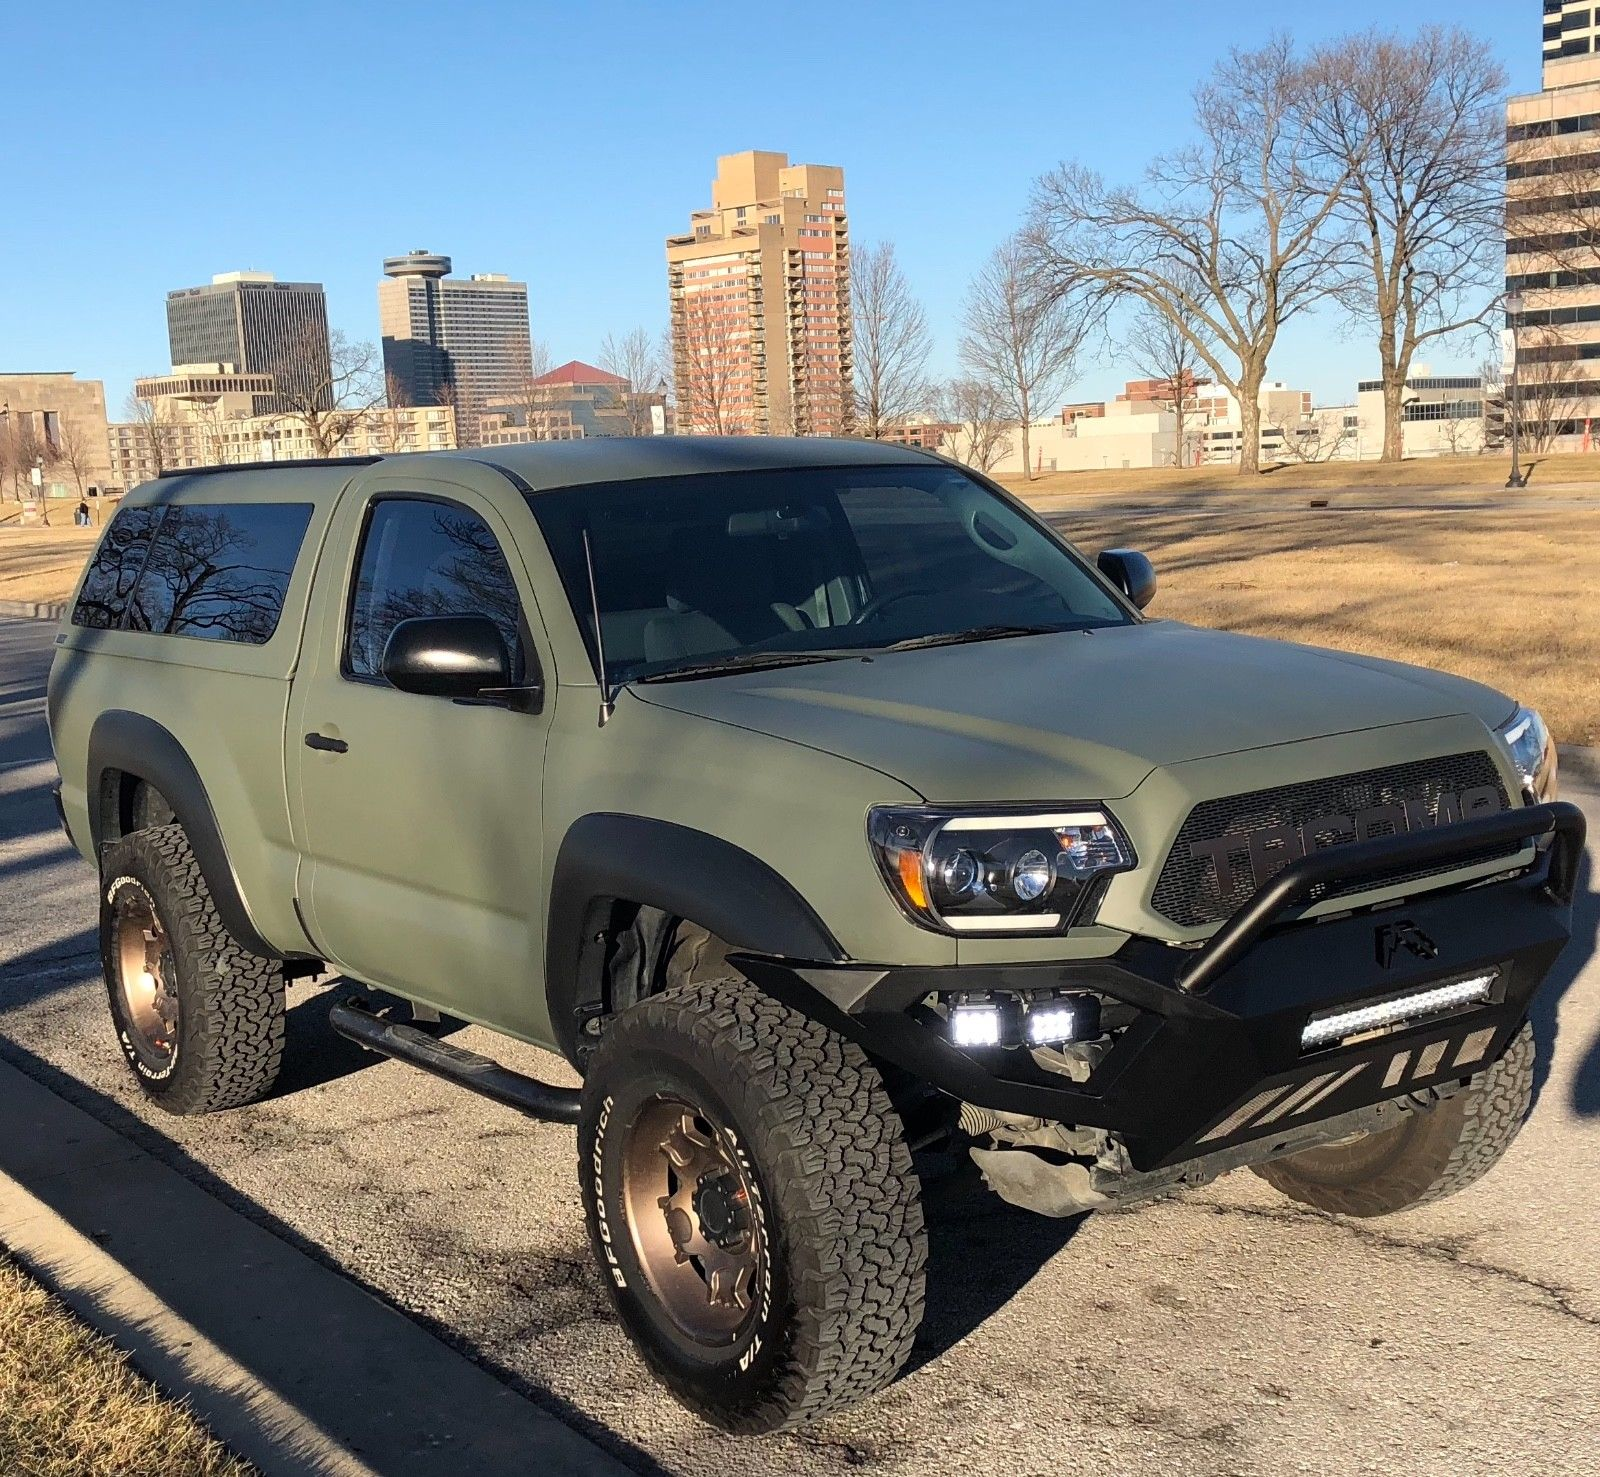 camper shell 2012 Toyota Tacoma lifted for sale